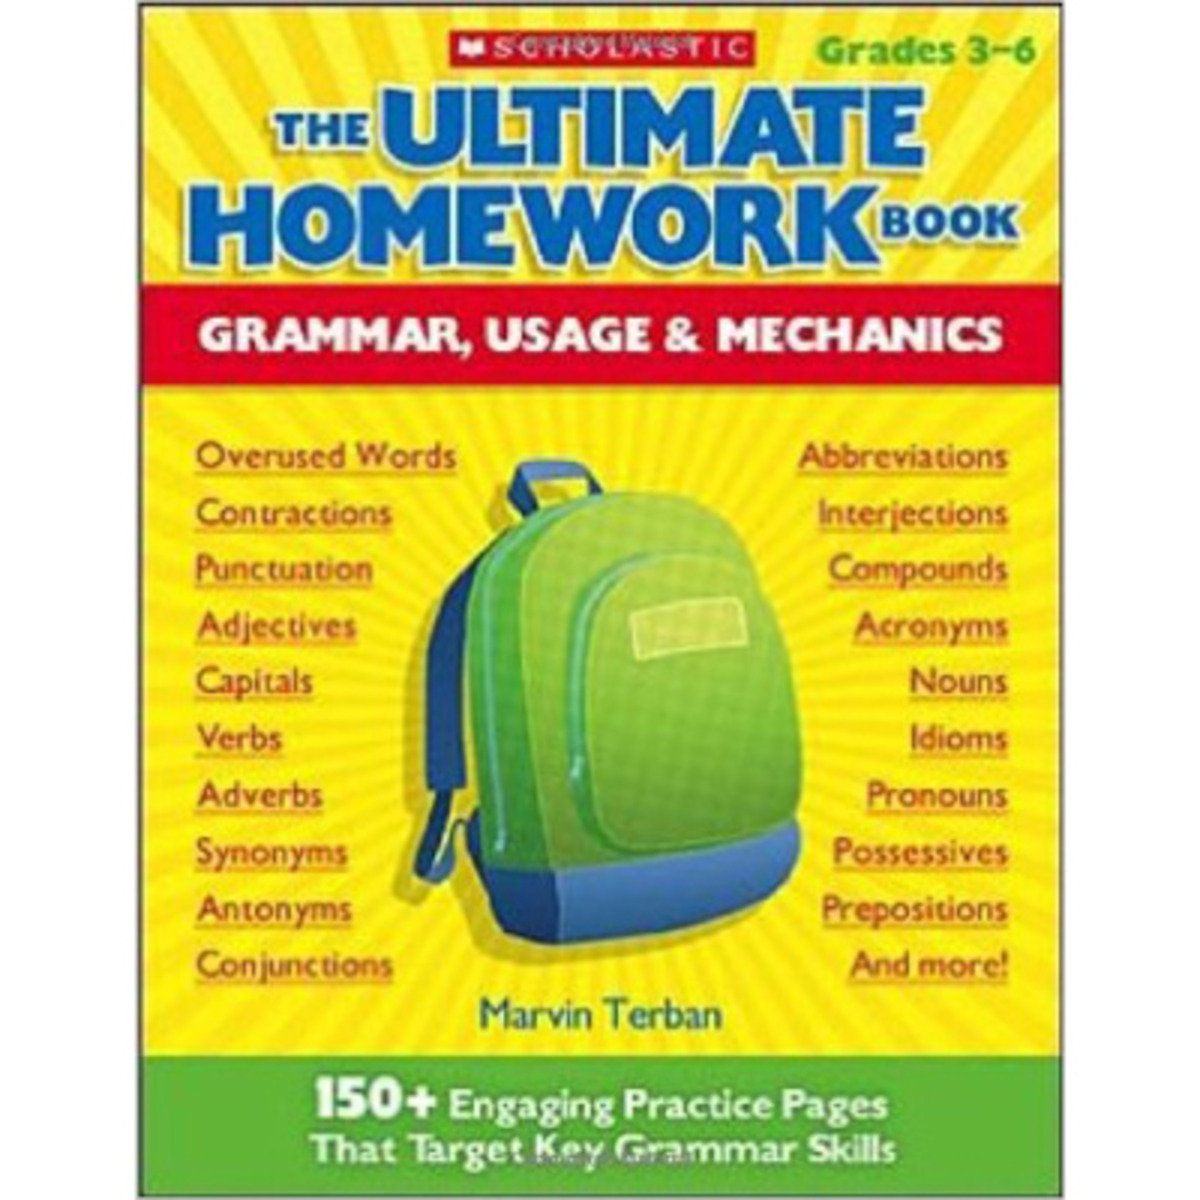 THE ULTIMATE HOMEWORK BOOK: Grammar, Usage & Mechanics : 150+ Engaging Practice Pages That Target Ke